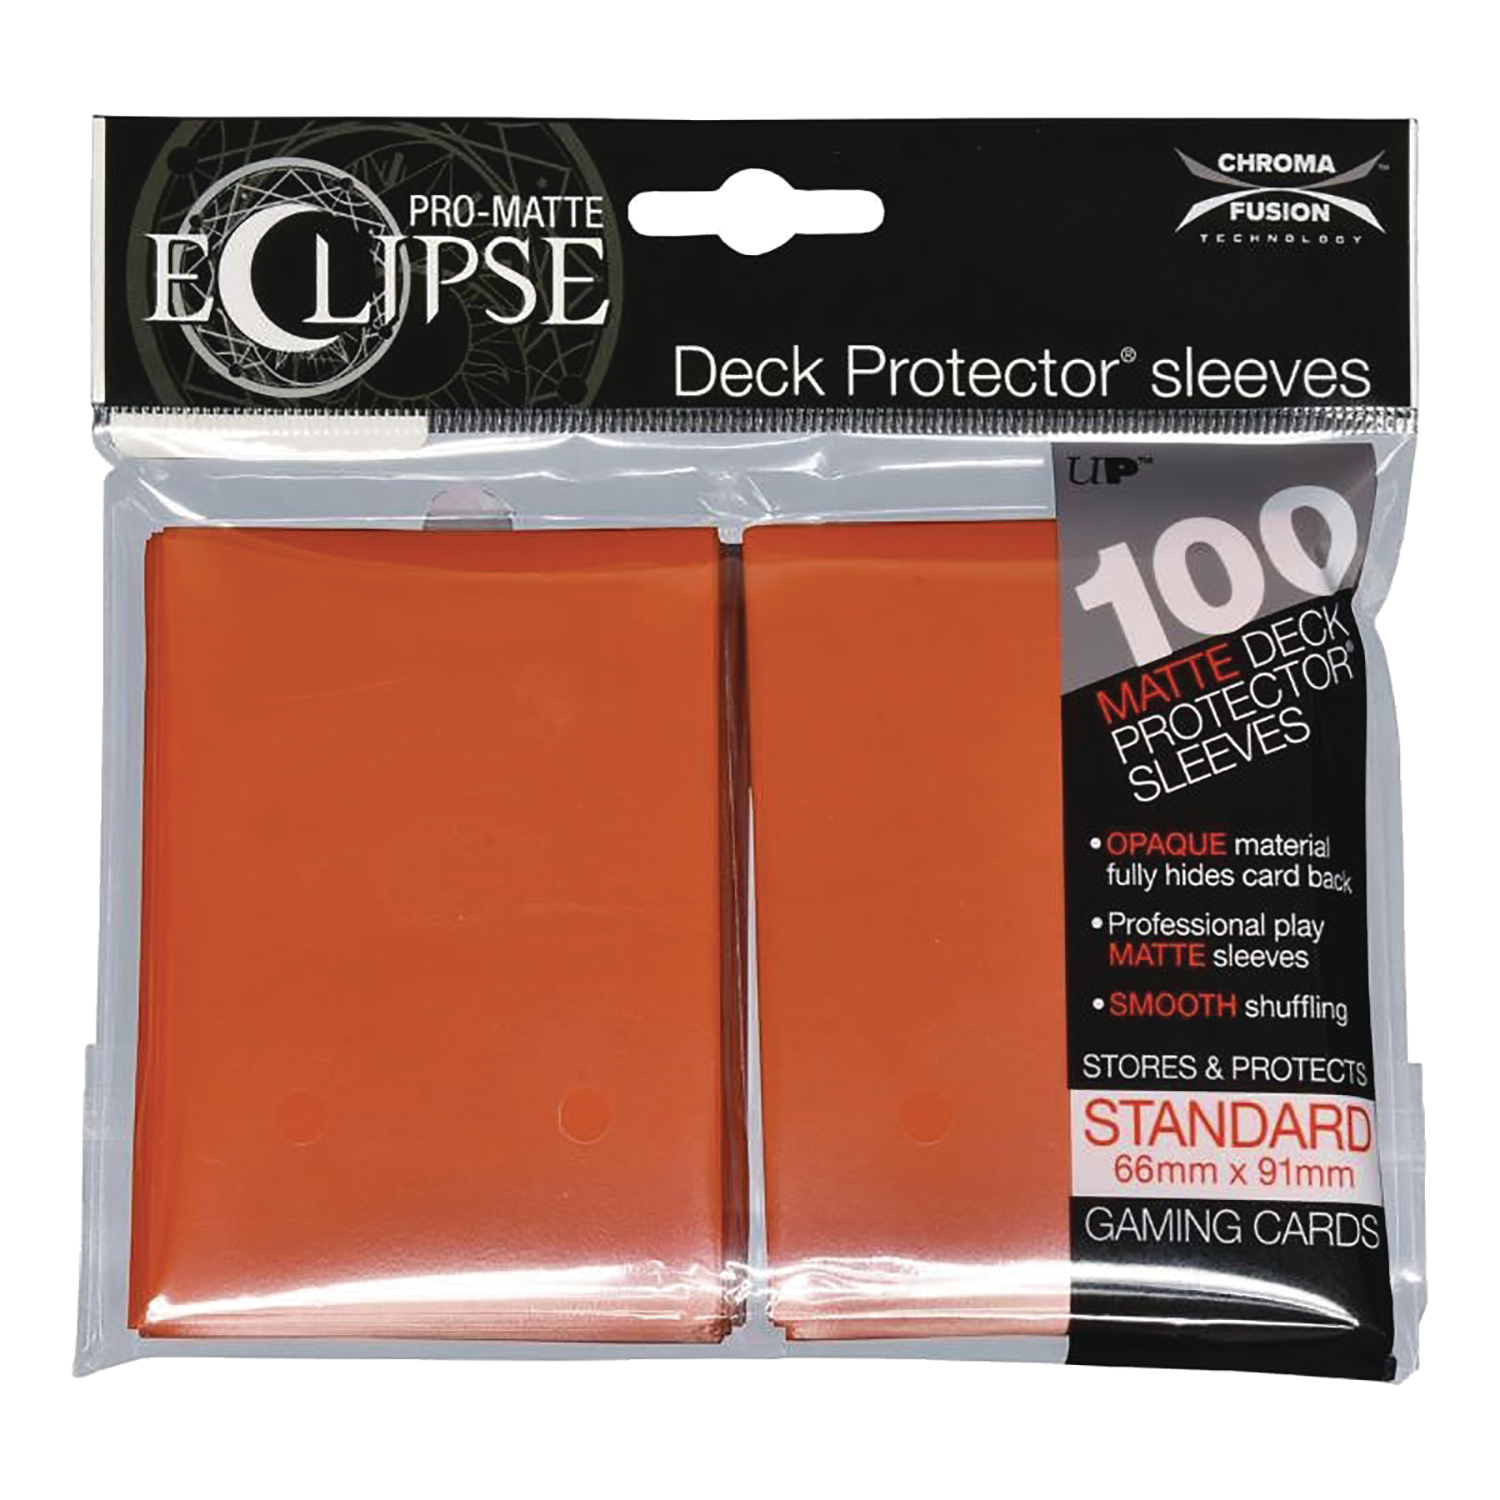 PRO MATTE ECLIPSE 2.0 DECK PROTECTORS 100CT PUMPKIN ORANGE (